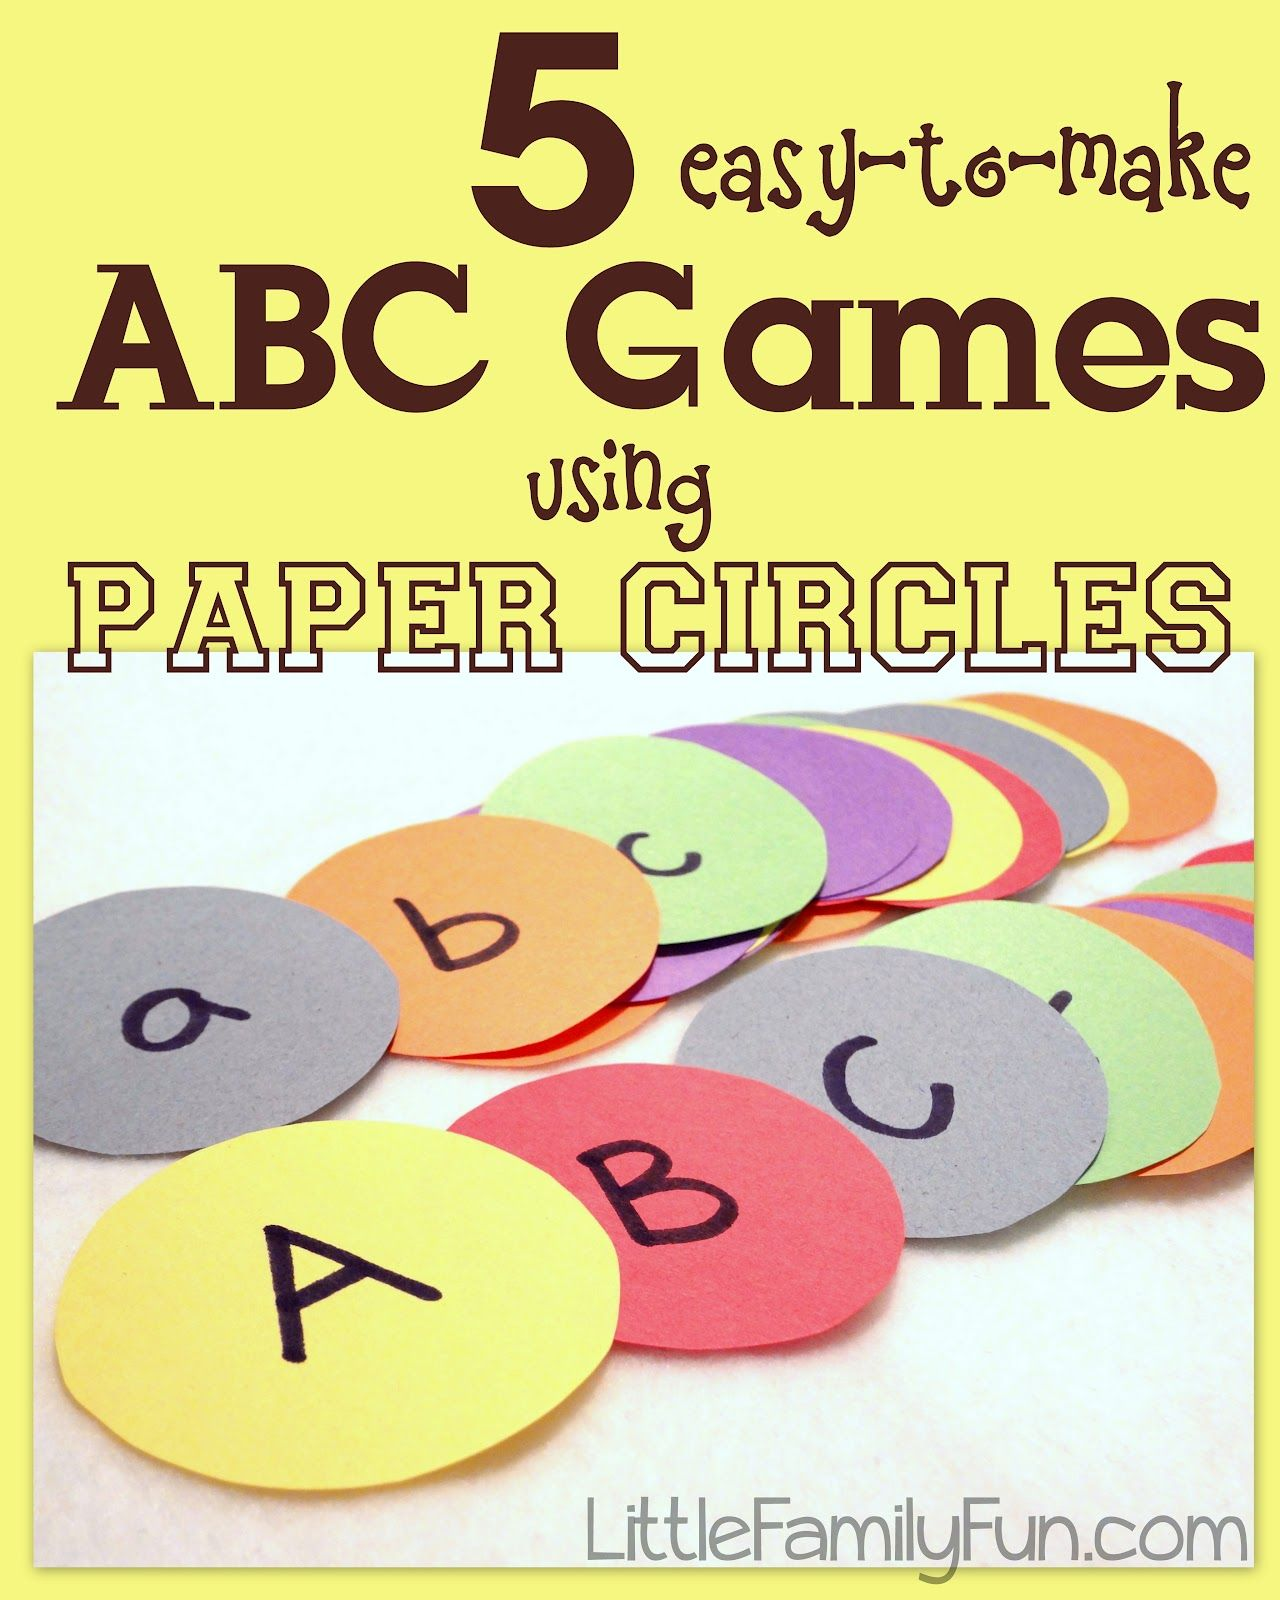 Paper Circle ABC Games Cut Out Circles Write The ABCs On Them And Play 5 Different Alphabet For Preschoolers